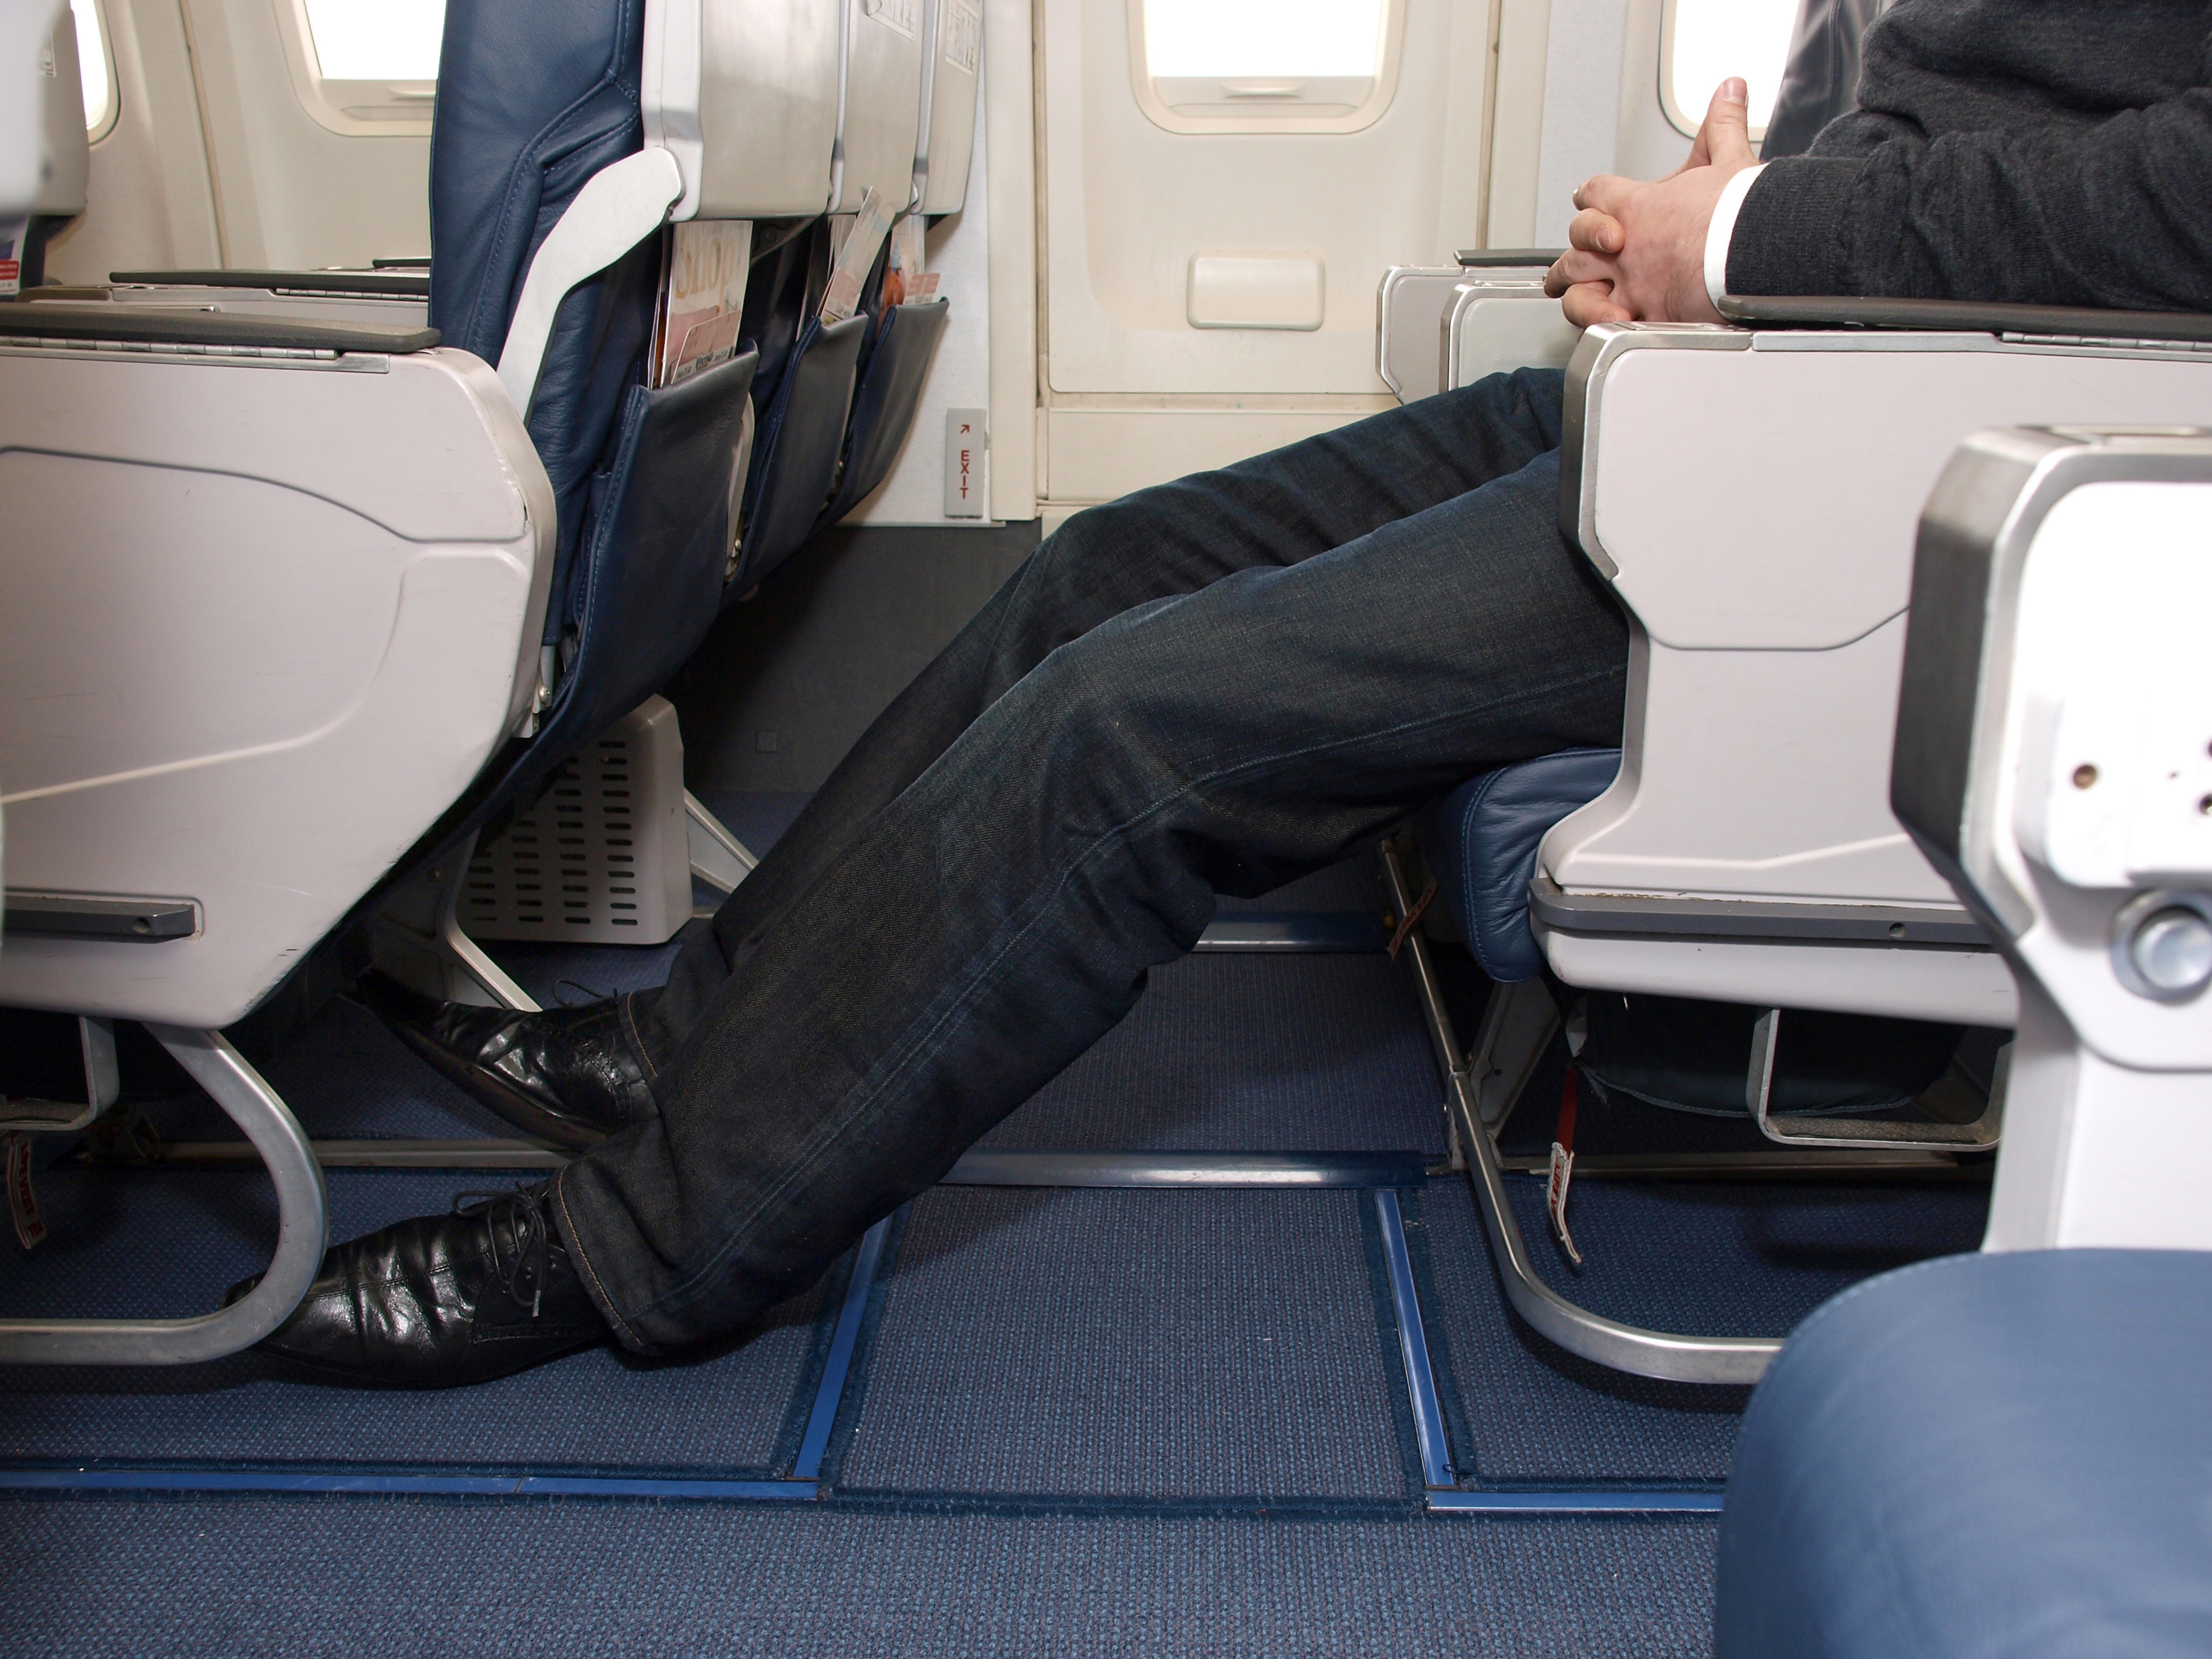 Which airlines have the most legroom? - Clark Howard